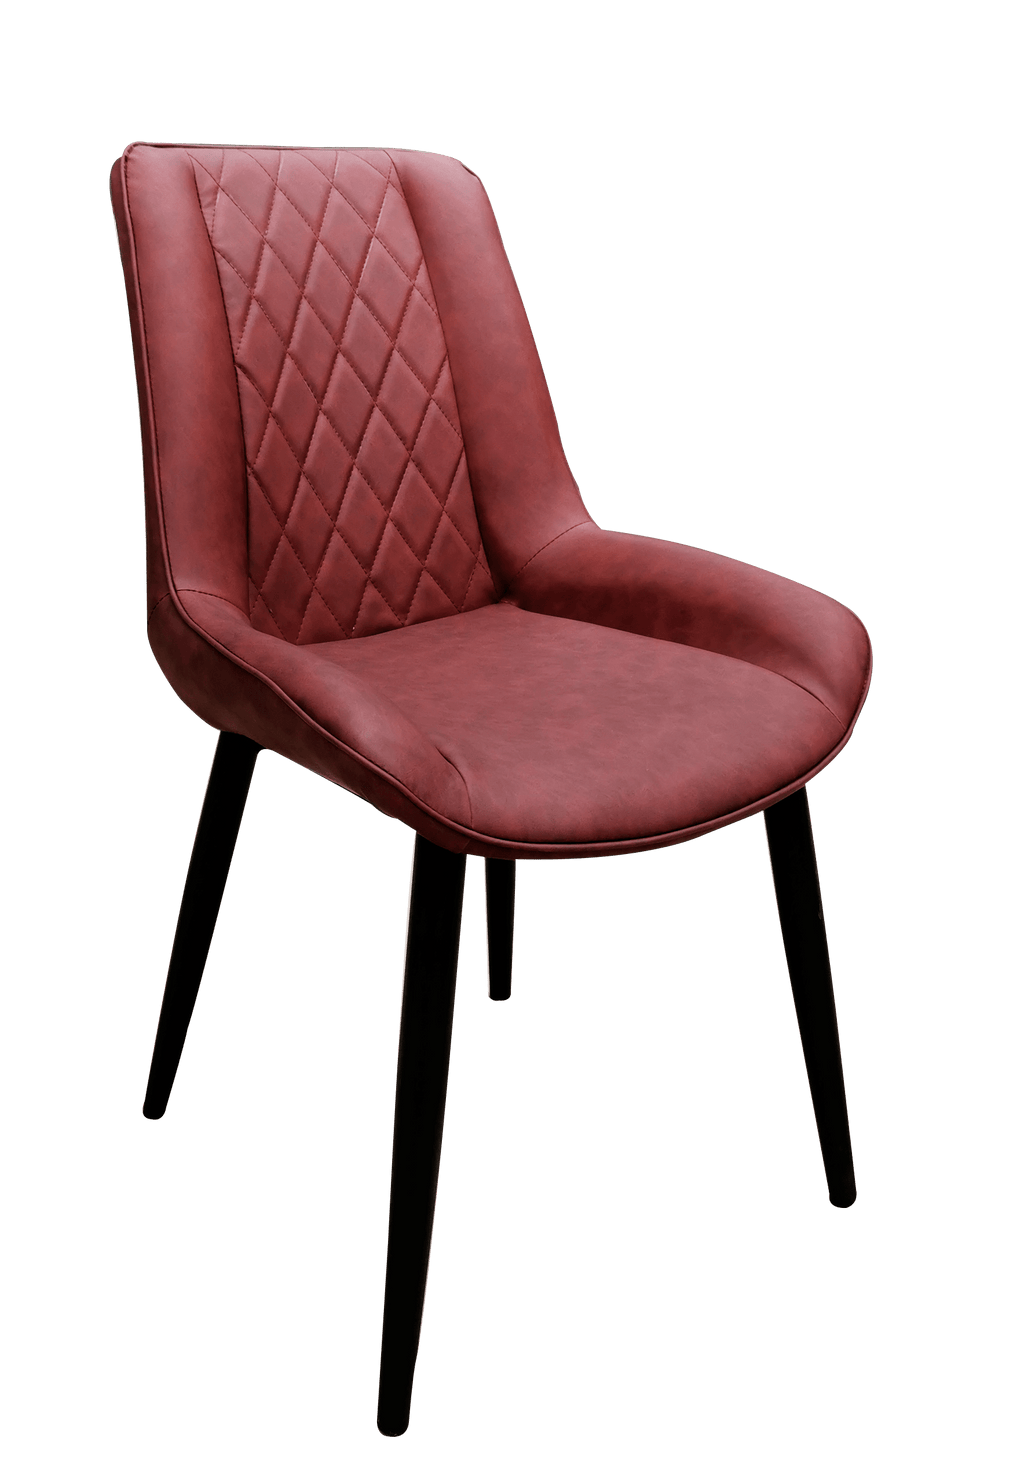 Dining Chair -  Regal Luxe LS063 - Italhouse